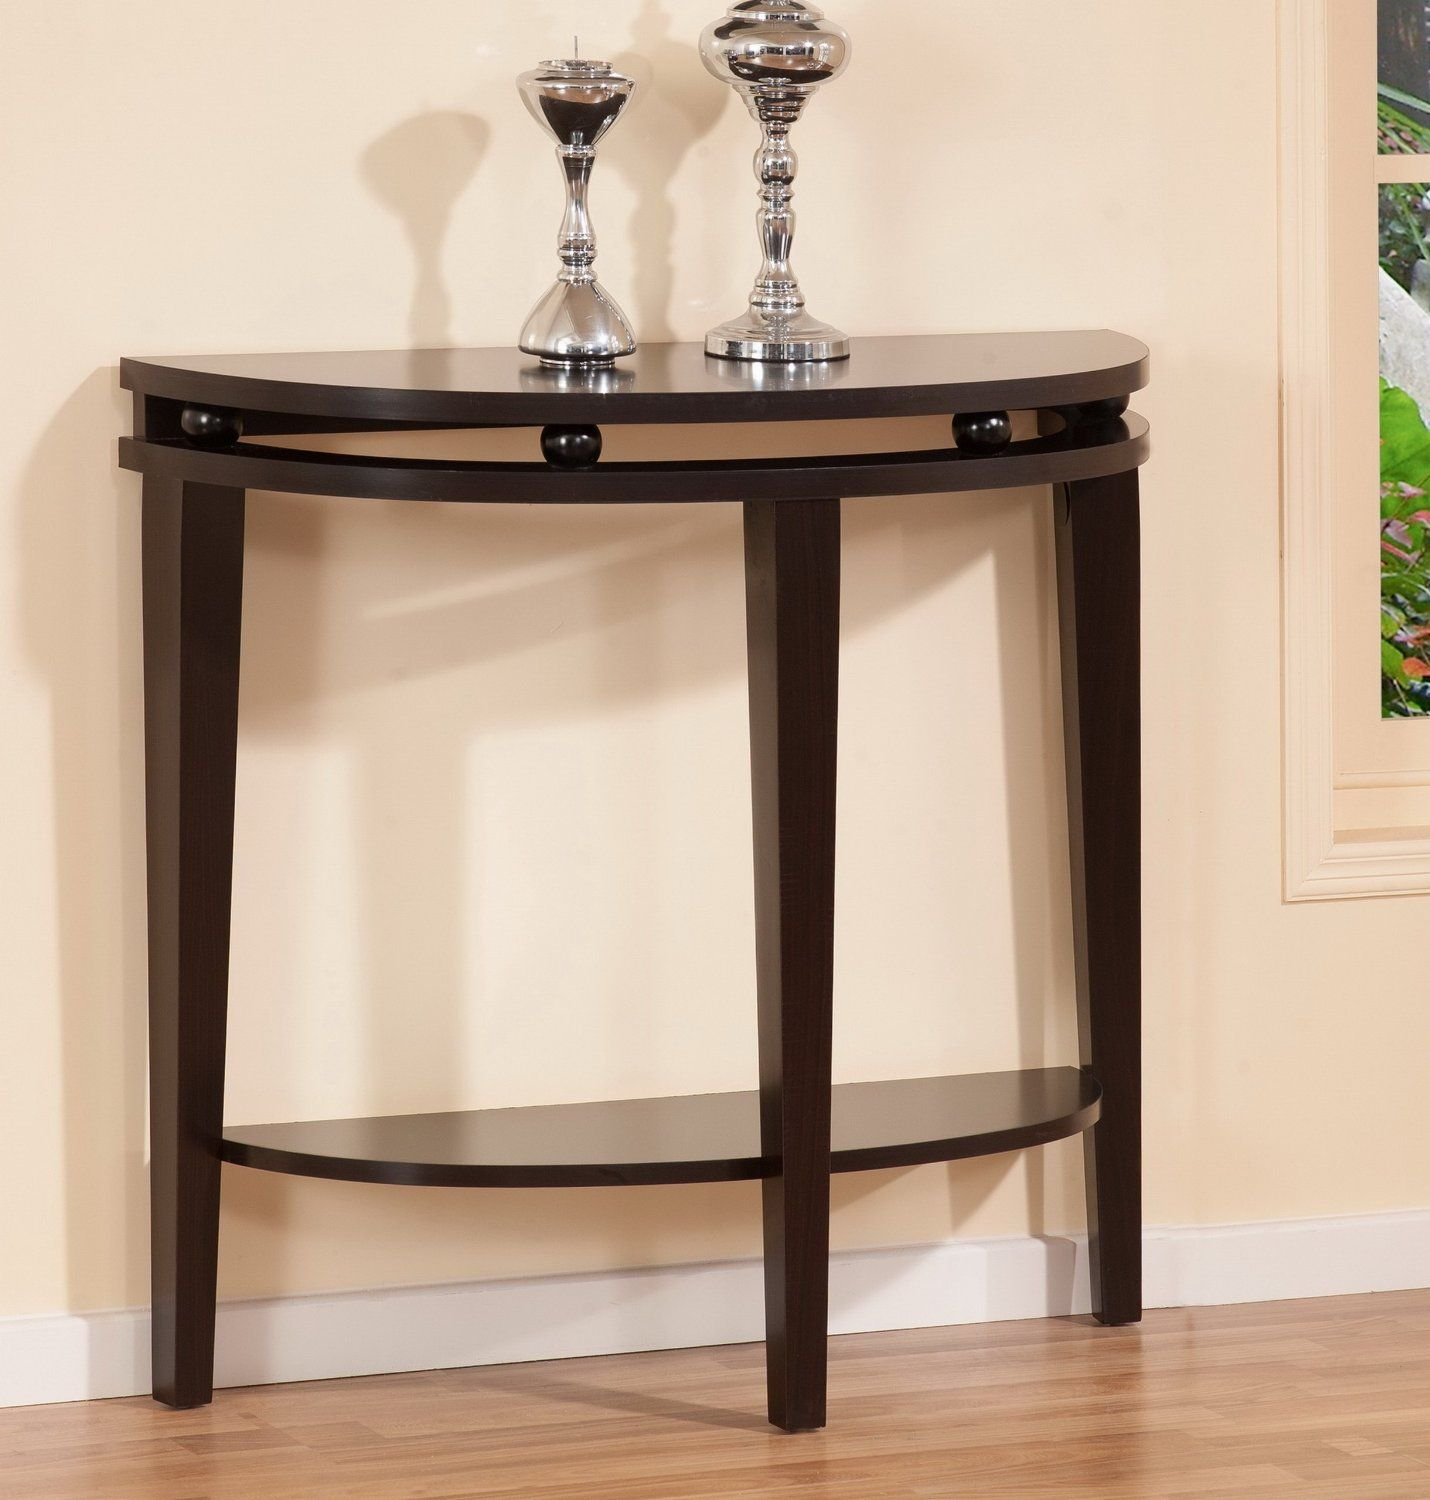 Statuette of Half Moon Entry Table Mirrored console